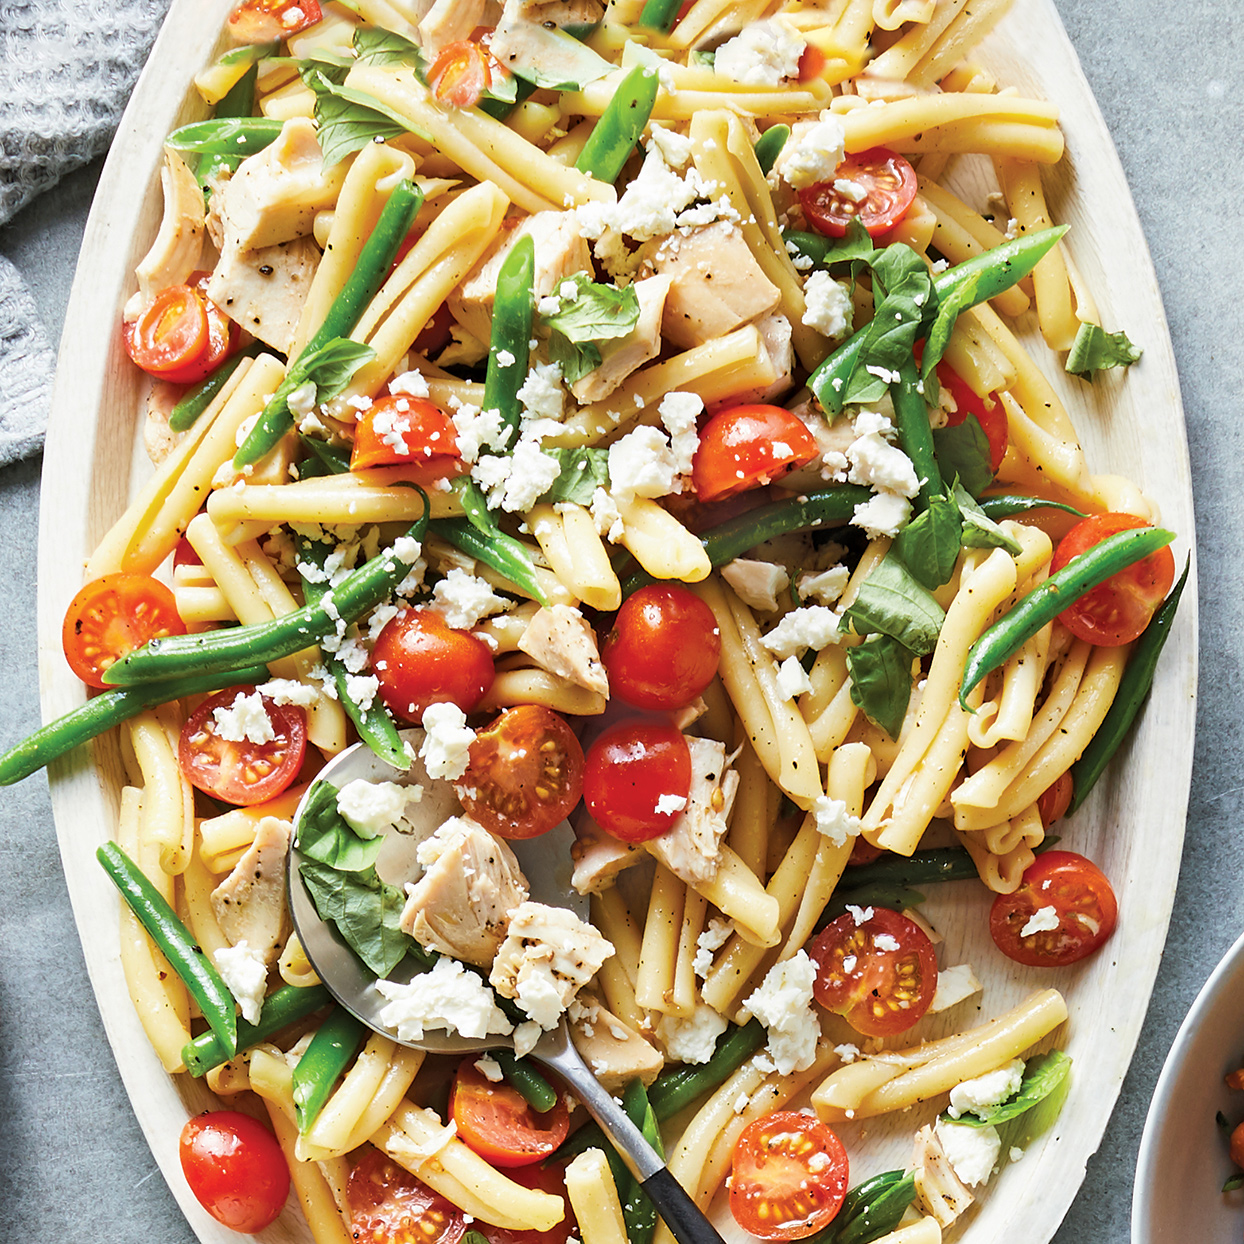 Need something to bring to a party or backyard barbecue? This make-ahead chicken pasta salad recipe is classic and completely adaptable-you can swap in whatever veggies, herbs or cheese you like. Source: 400 Calorie Recipes